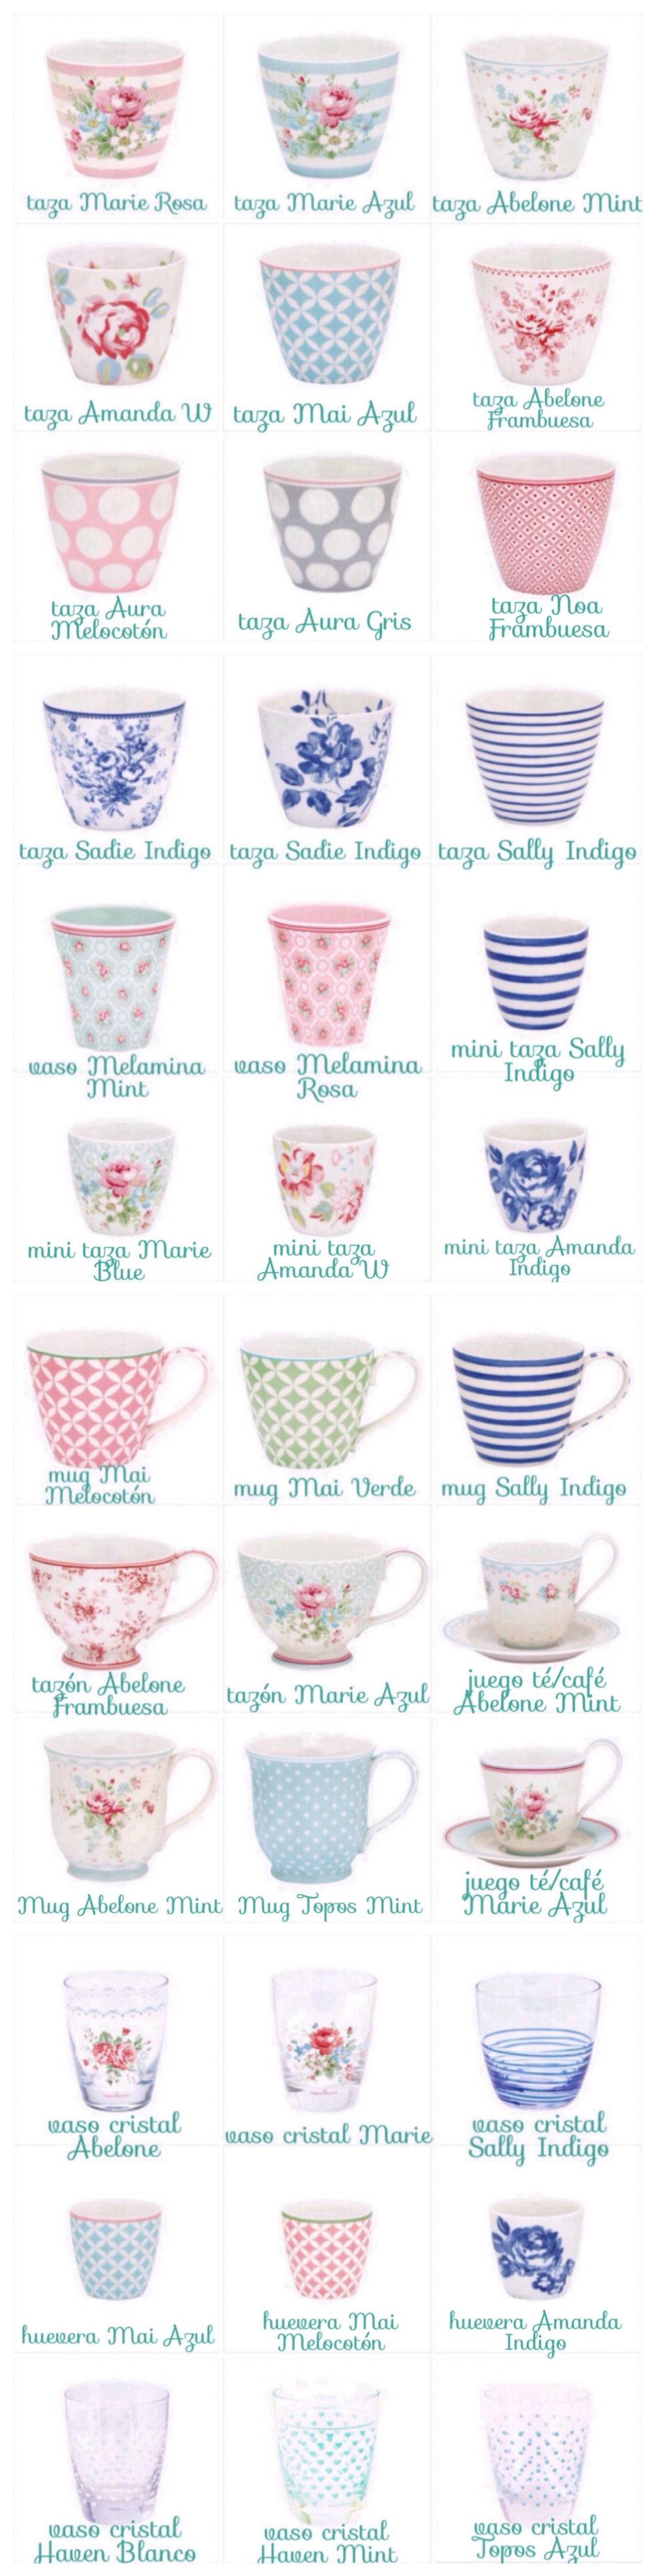 cups and lattes and mugs and glasses and tea cups and egg cups and mini cup and cups&sauces... by GreenGate